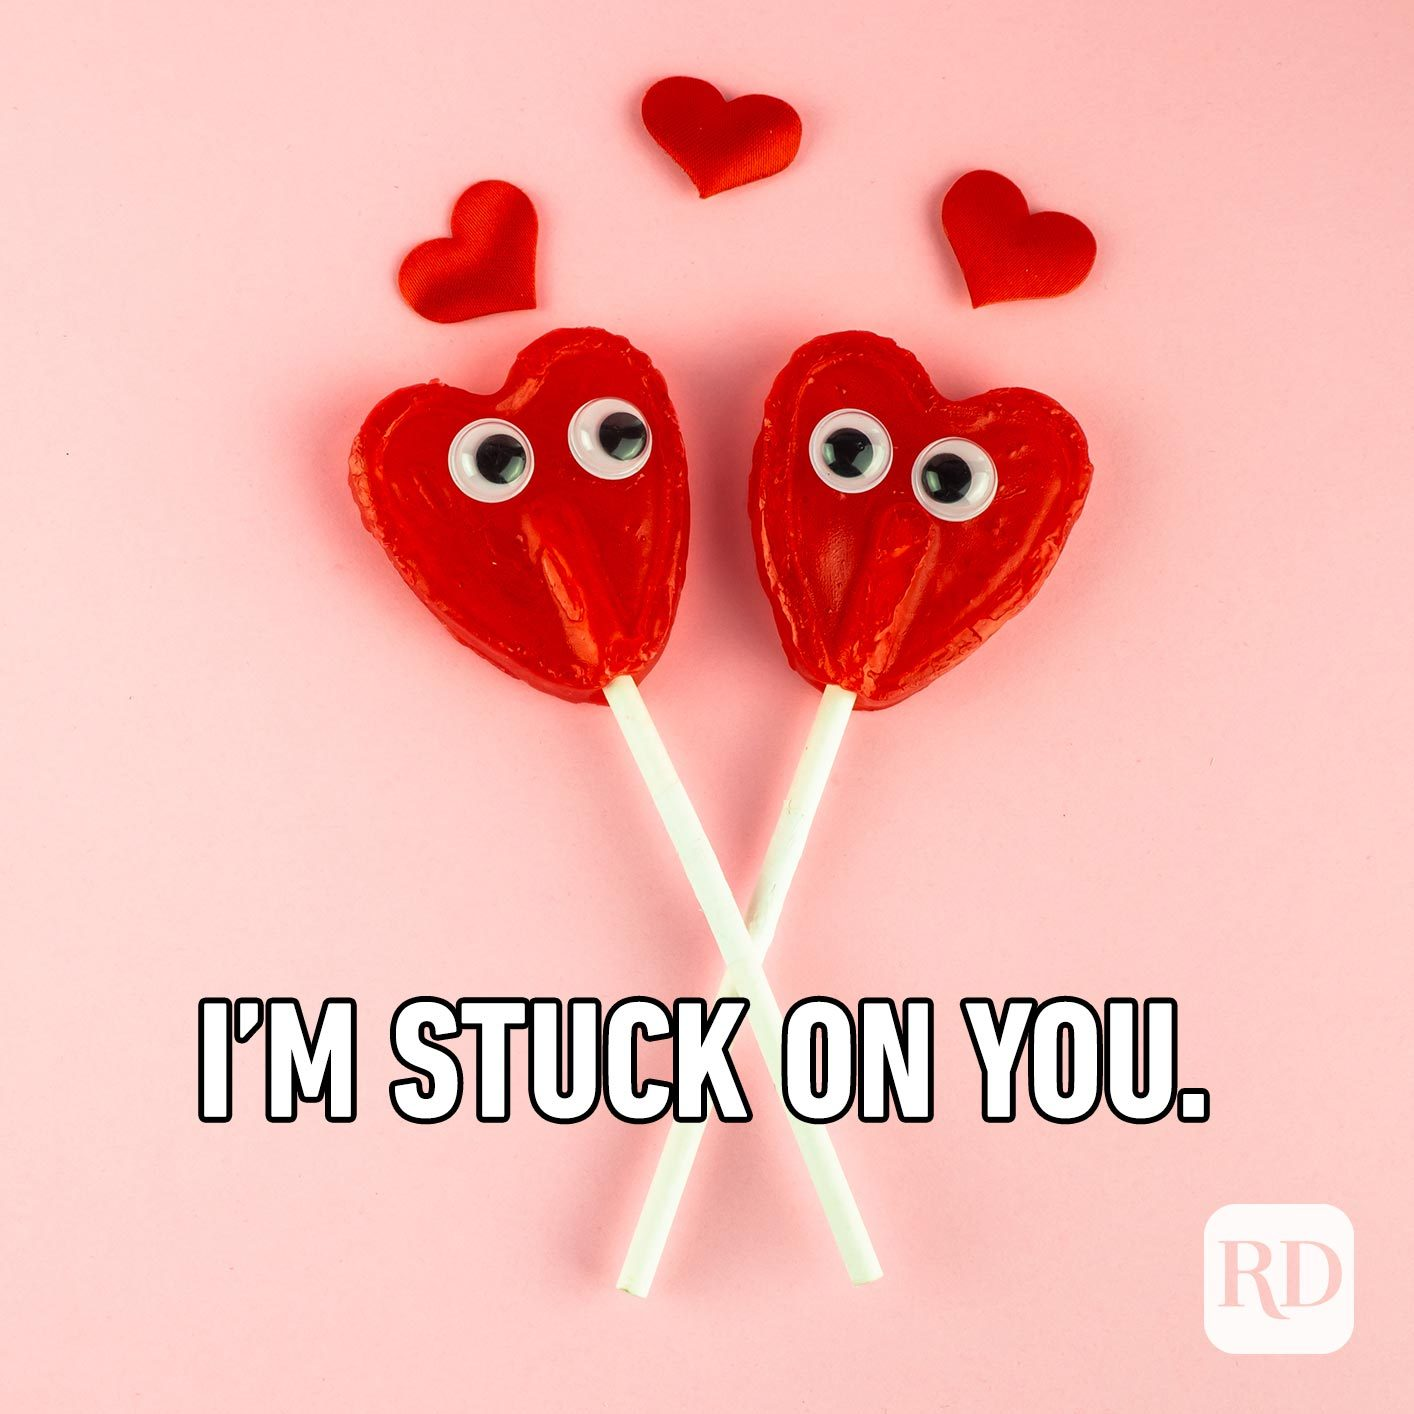 Two heart-shaped lollipops with googly eyes. Meme text: I'm stuck on you.